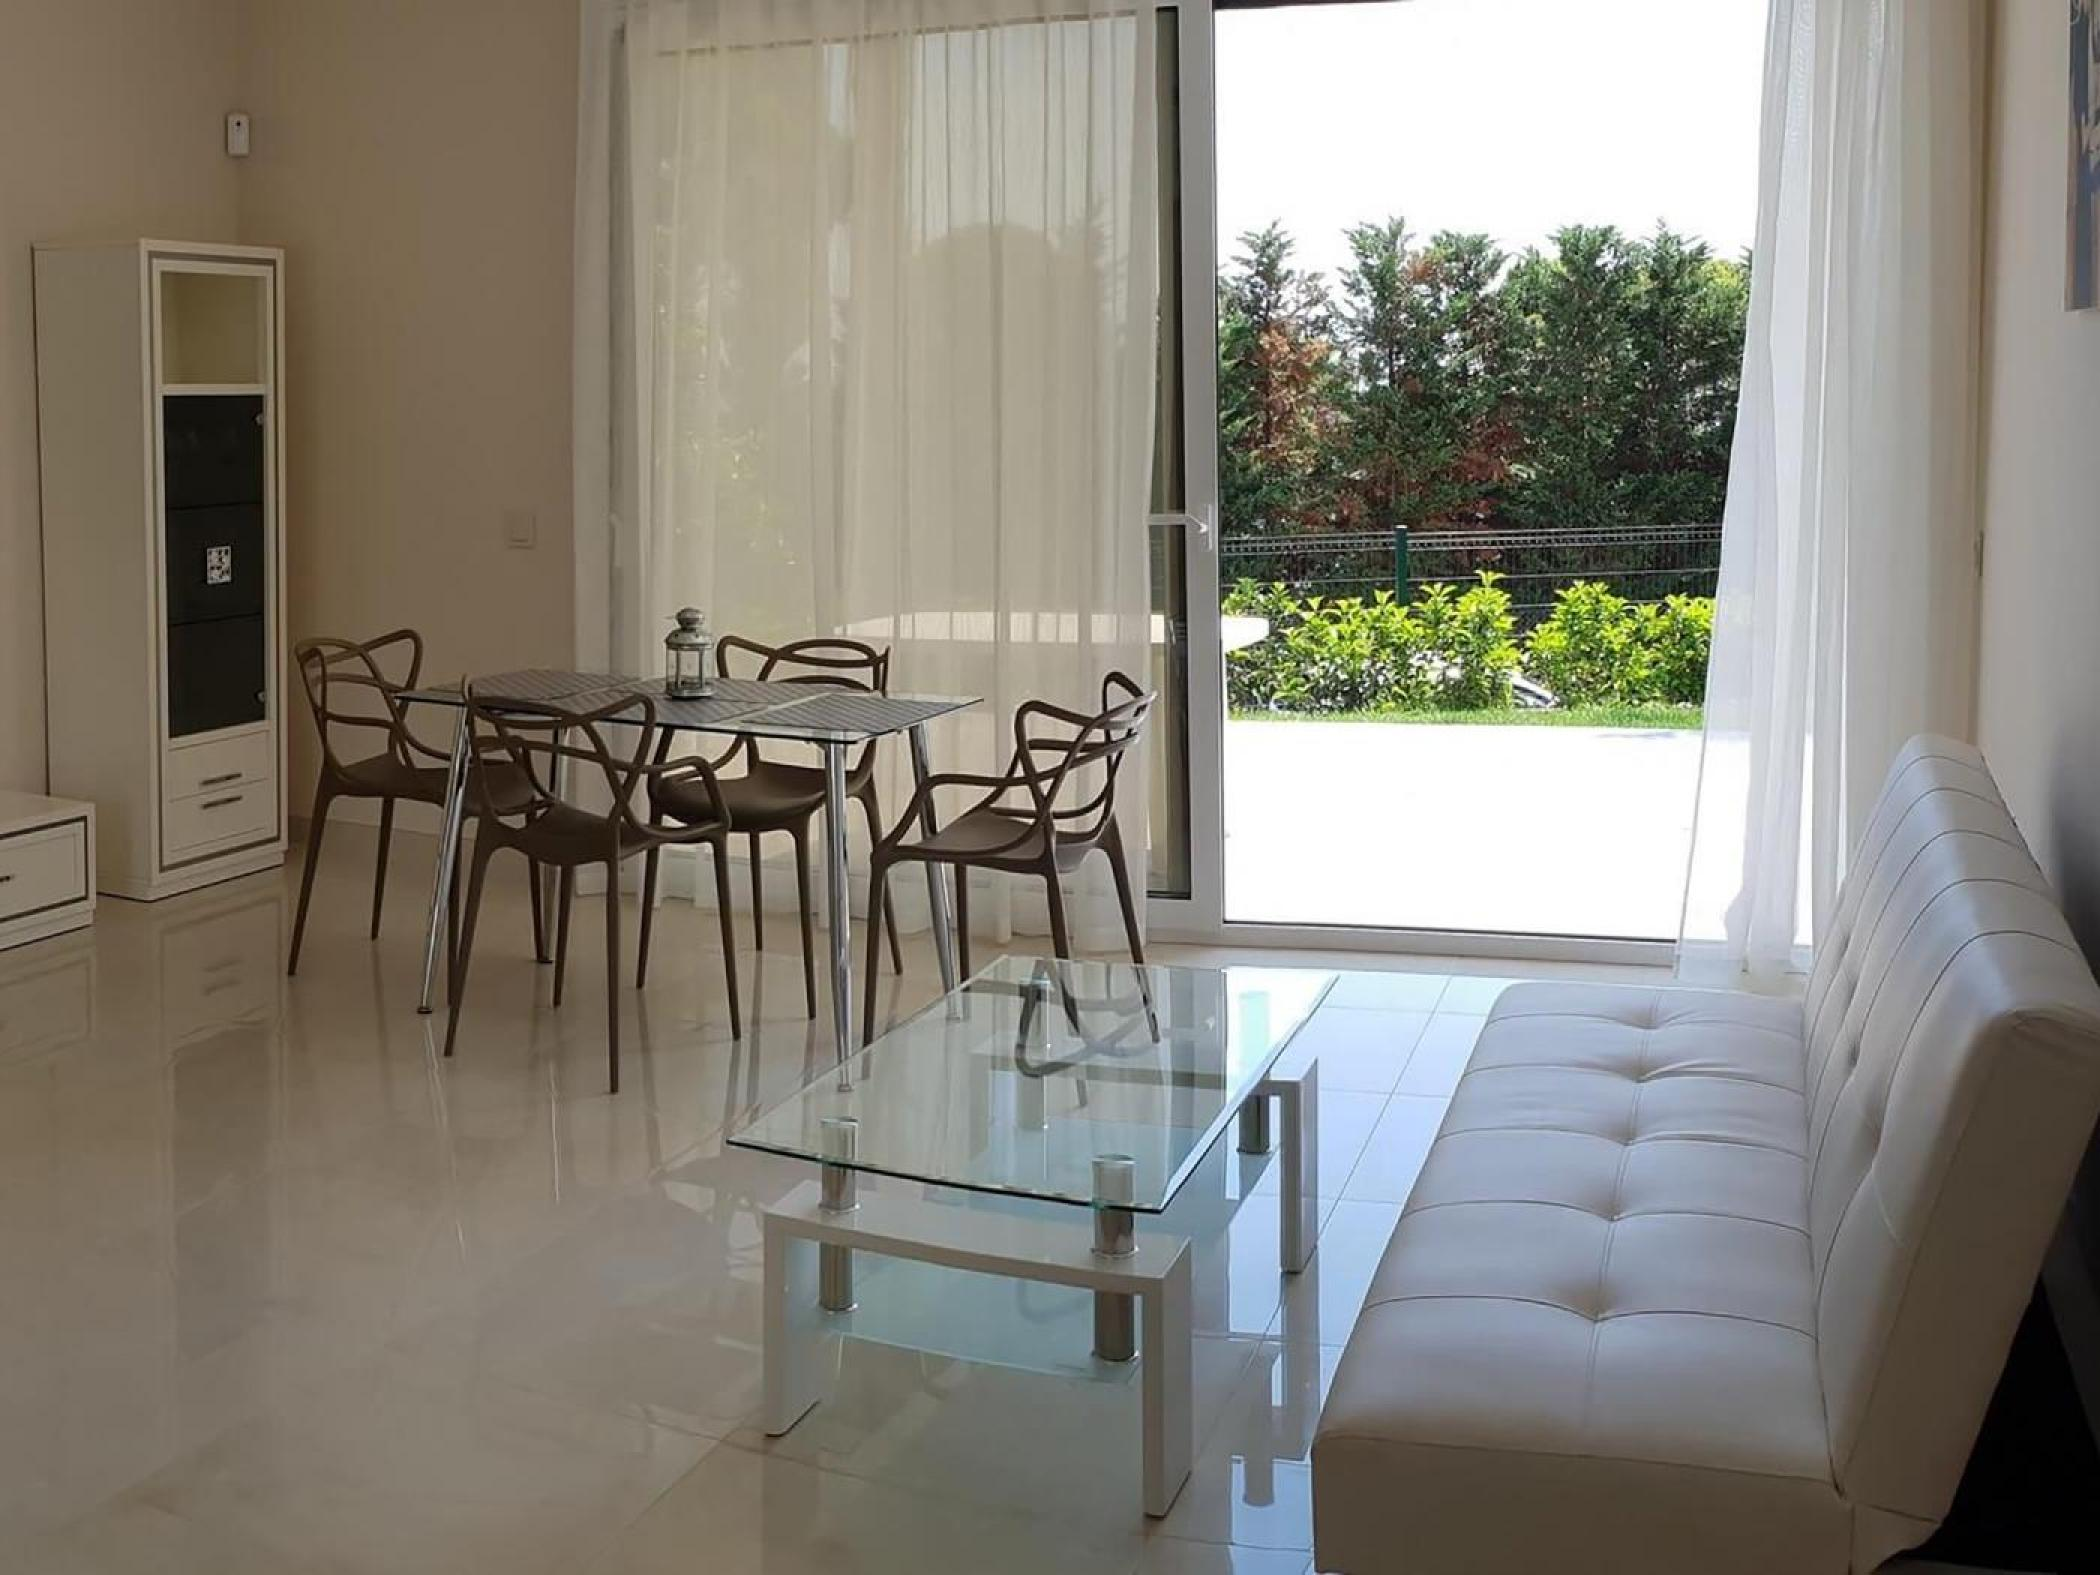 Rent Villa with Swimming pool in Platja d'Aro - Girorooms Travel Calma Holiday Villas jacuzzi 11 - 8